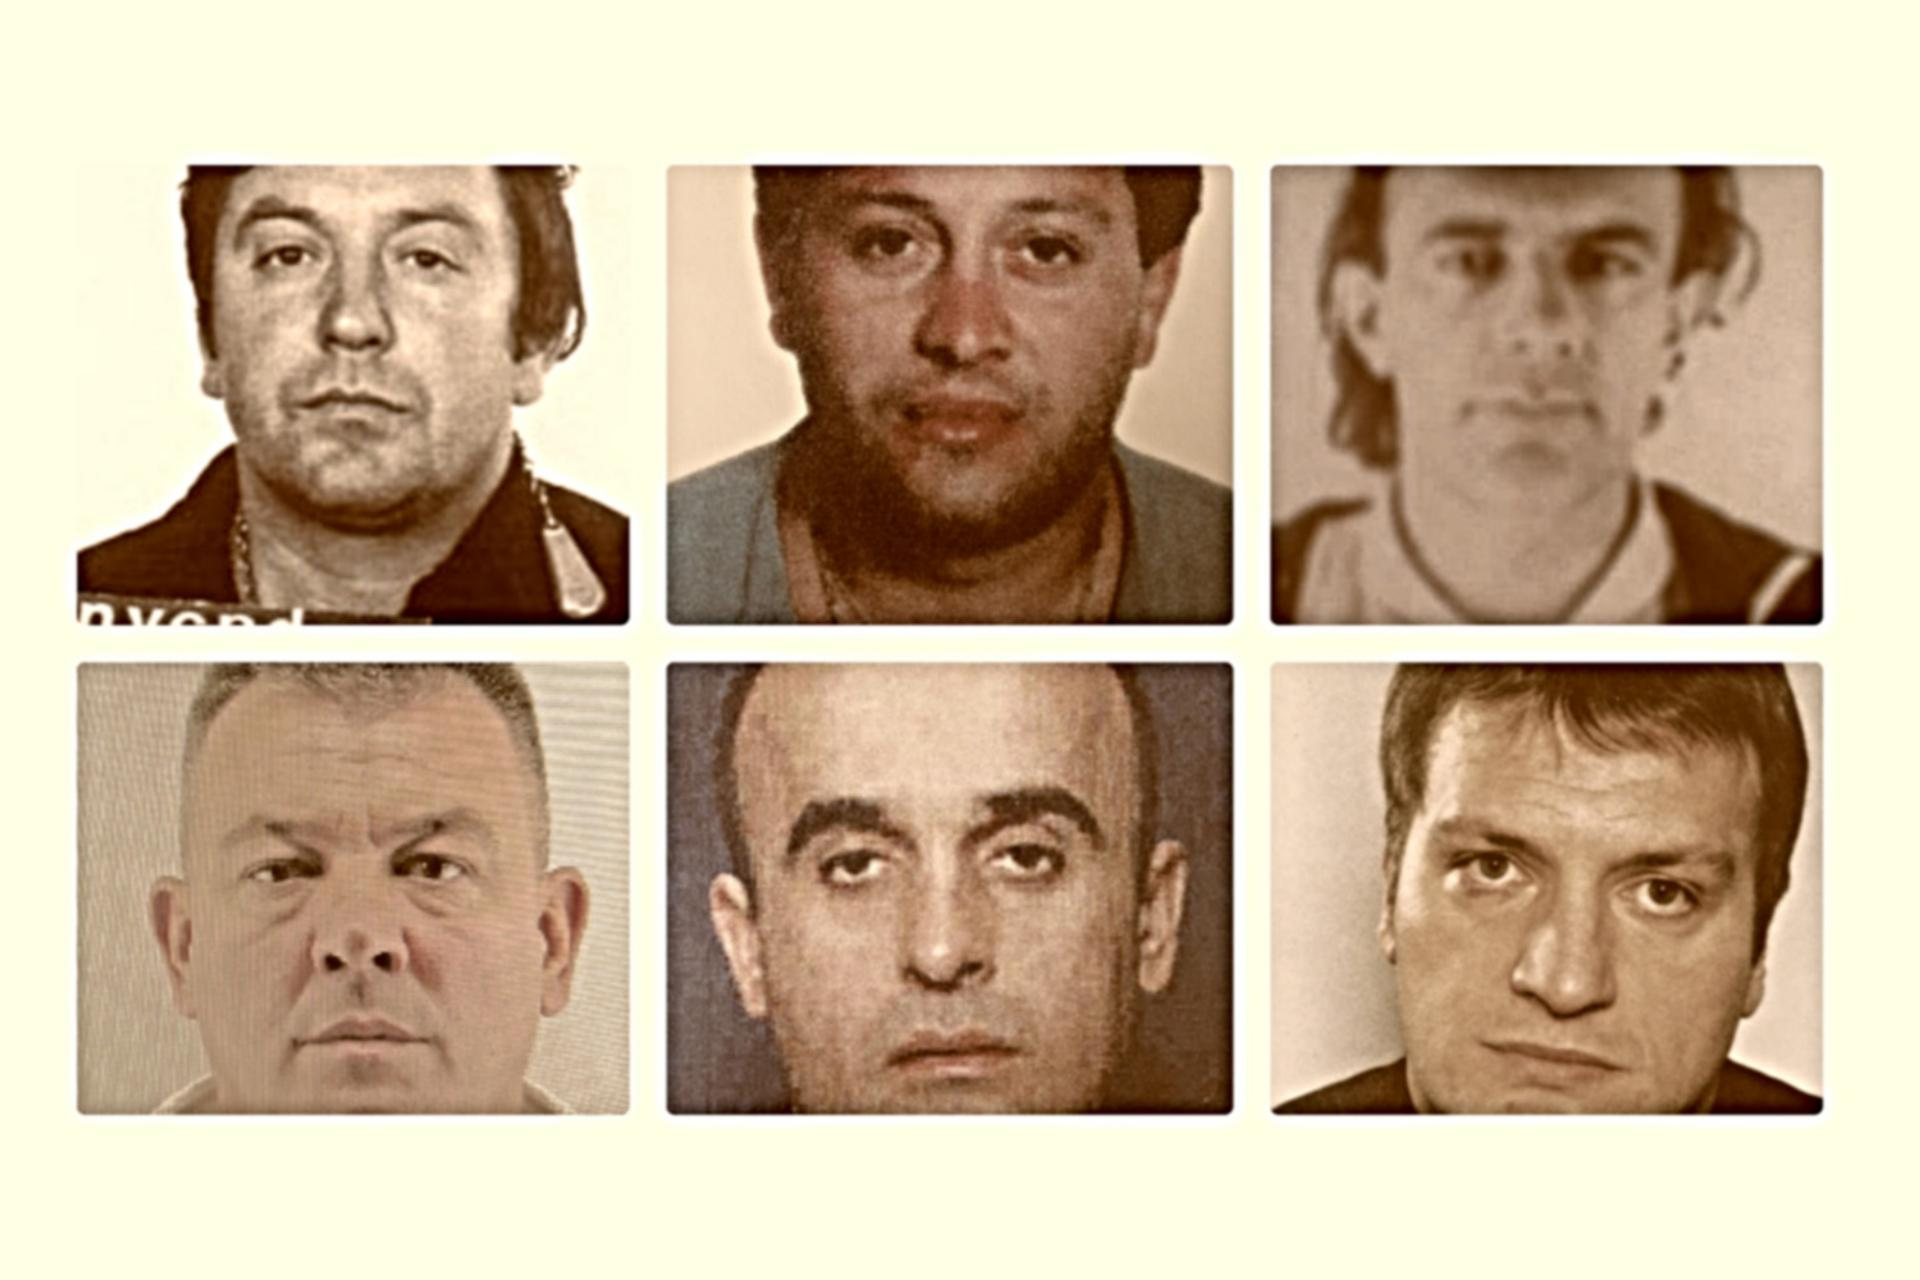 GROUP AMERICA: A US-Serbian Drug Gang With Friends In The Shadows